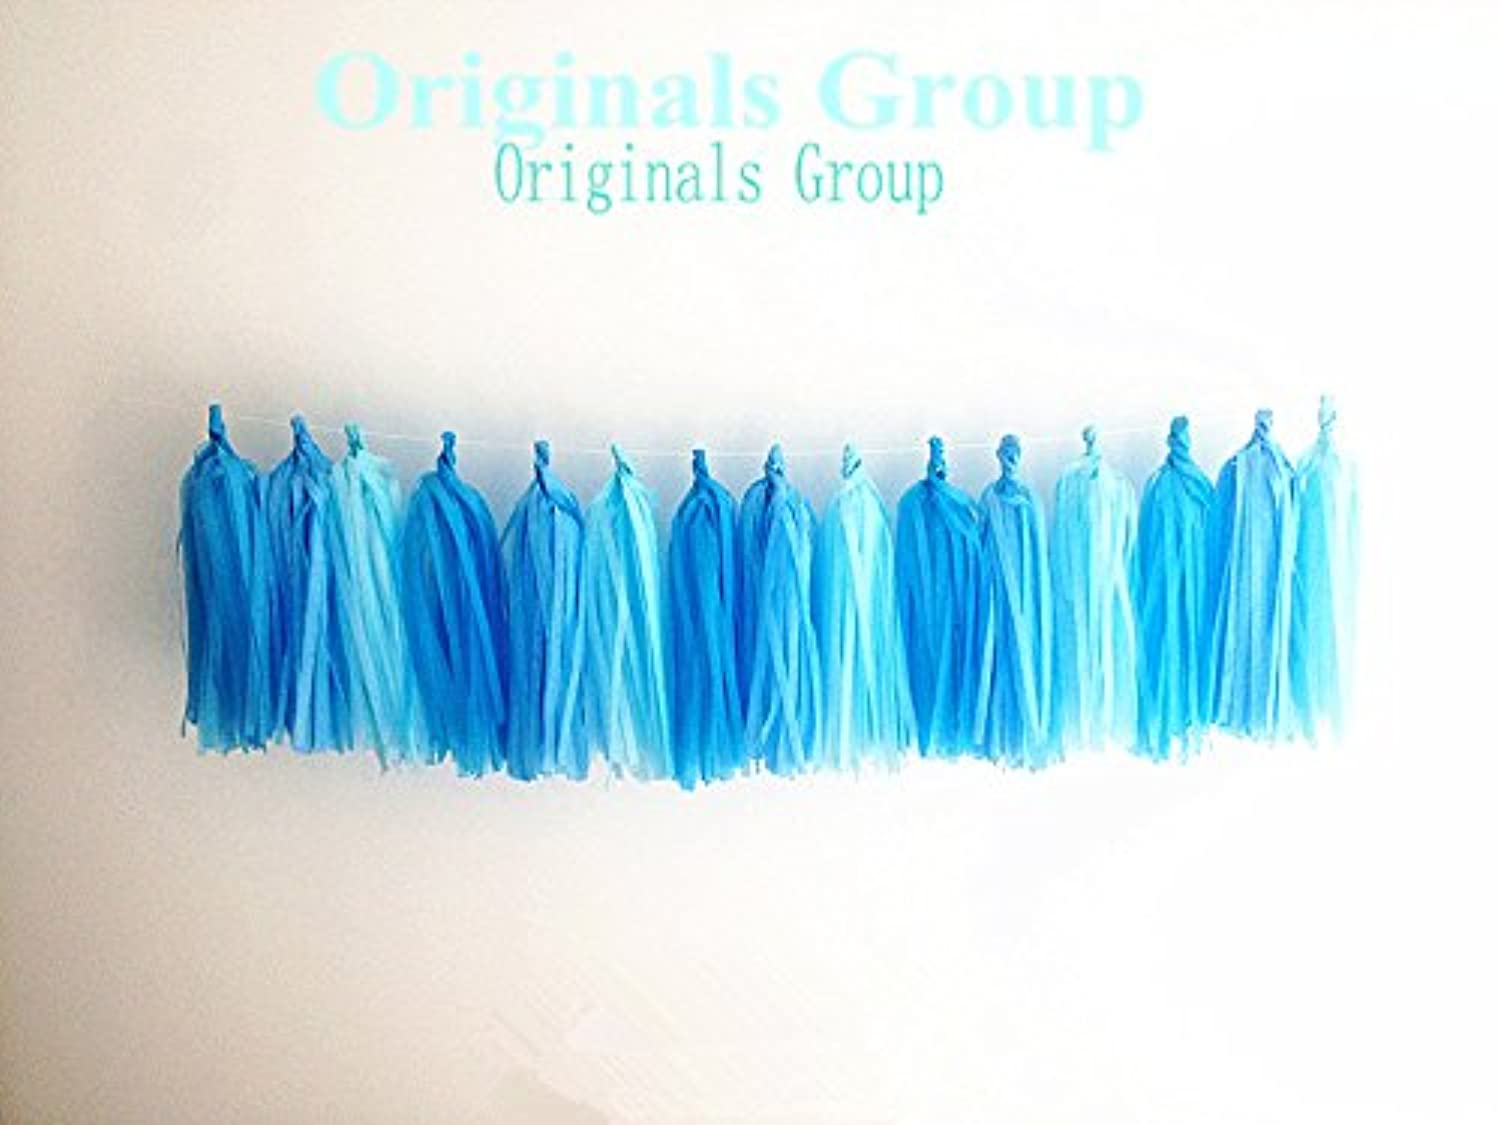 12 X Aqua Tissue Paper Tassels for Party Wedding Gold Garland Bunting Pom Pom